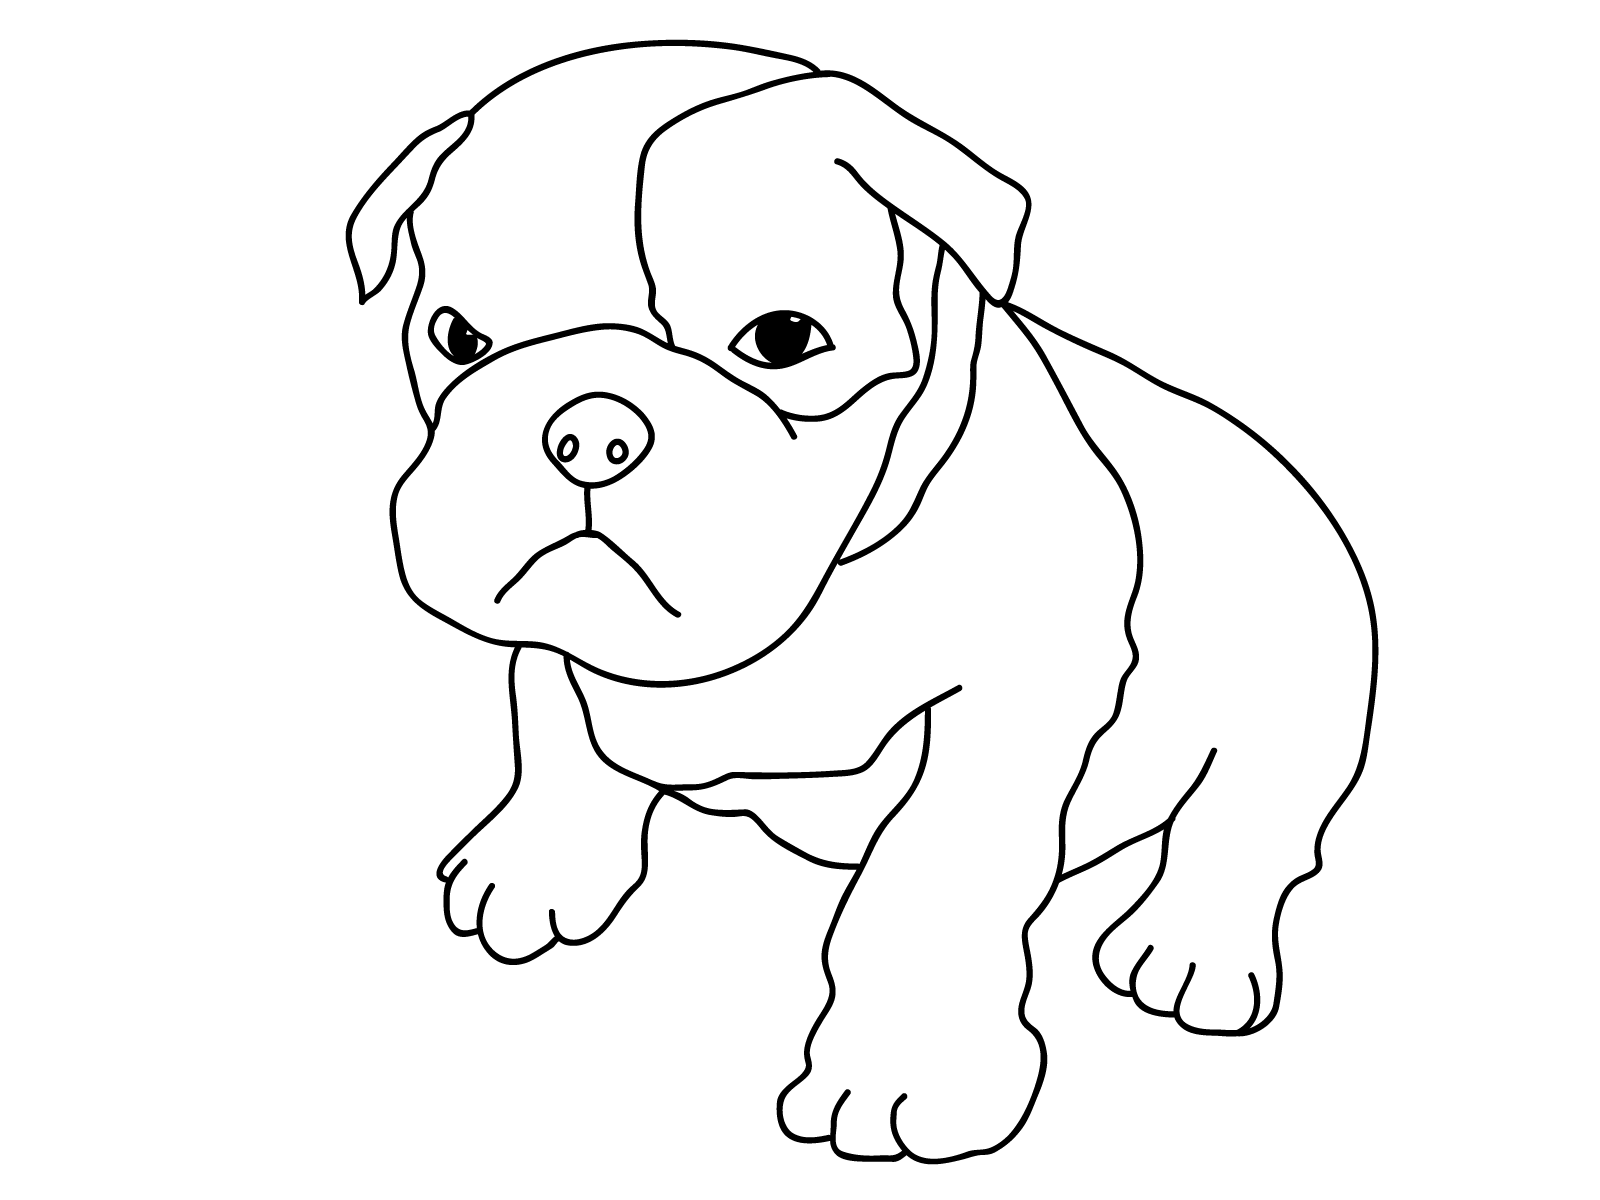 printable cute puppy coloring pages cute puppy coloring pages to print 101 coloring in 2020 printable puppy cute coloring pages